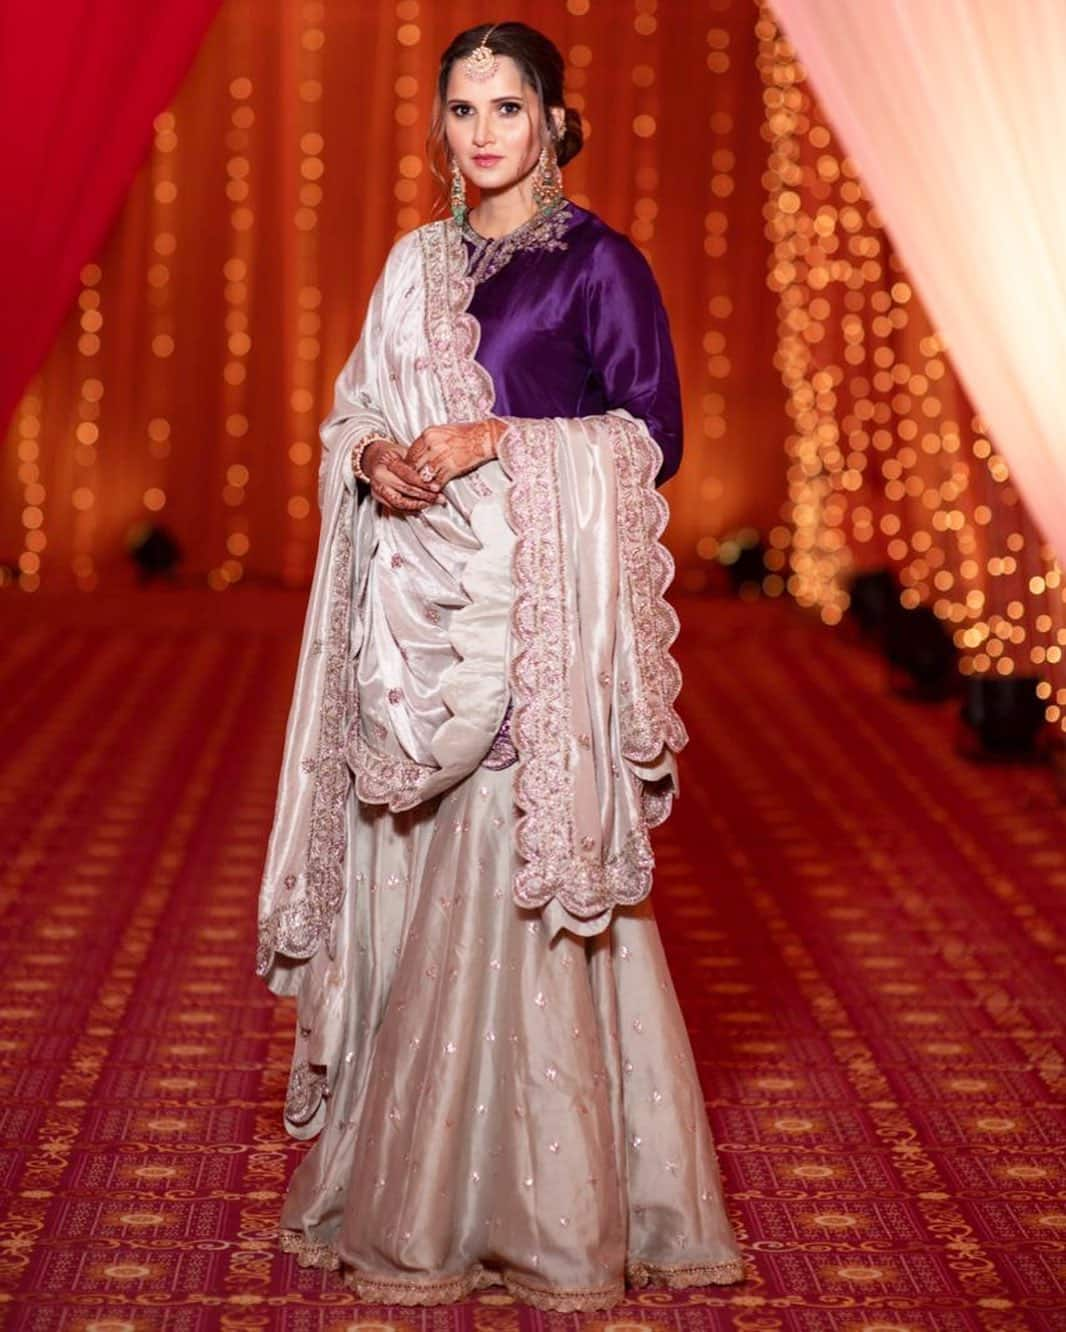 Sania Mirza Stuns in the traditional look